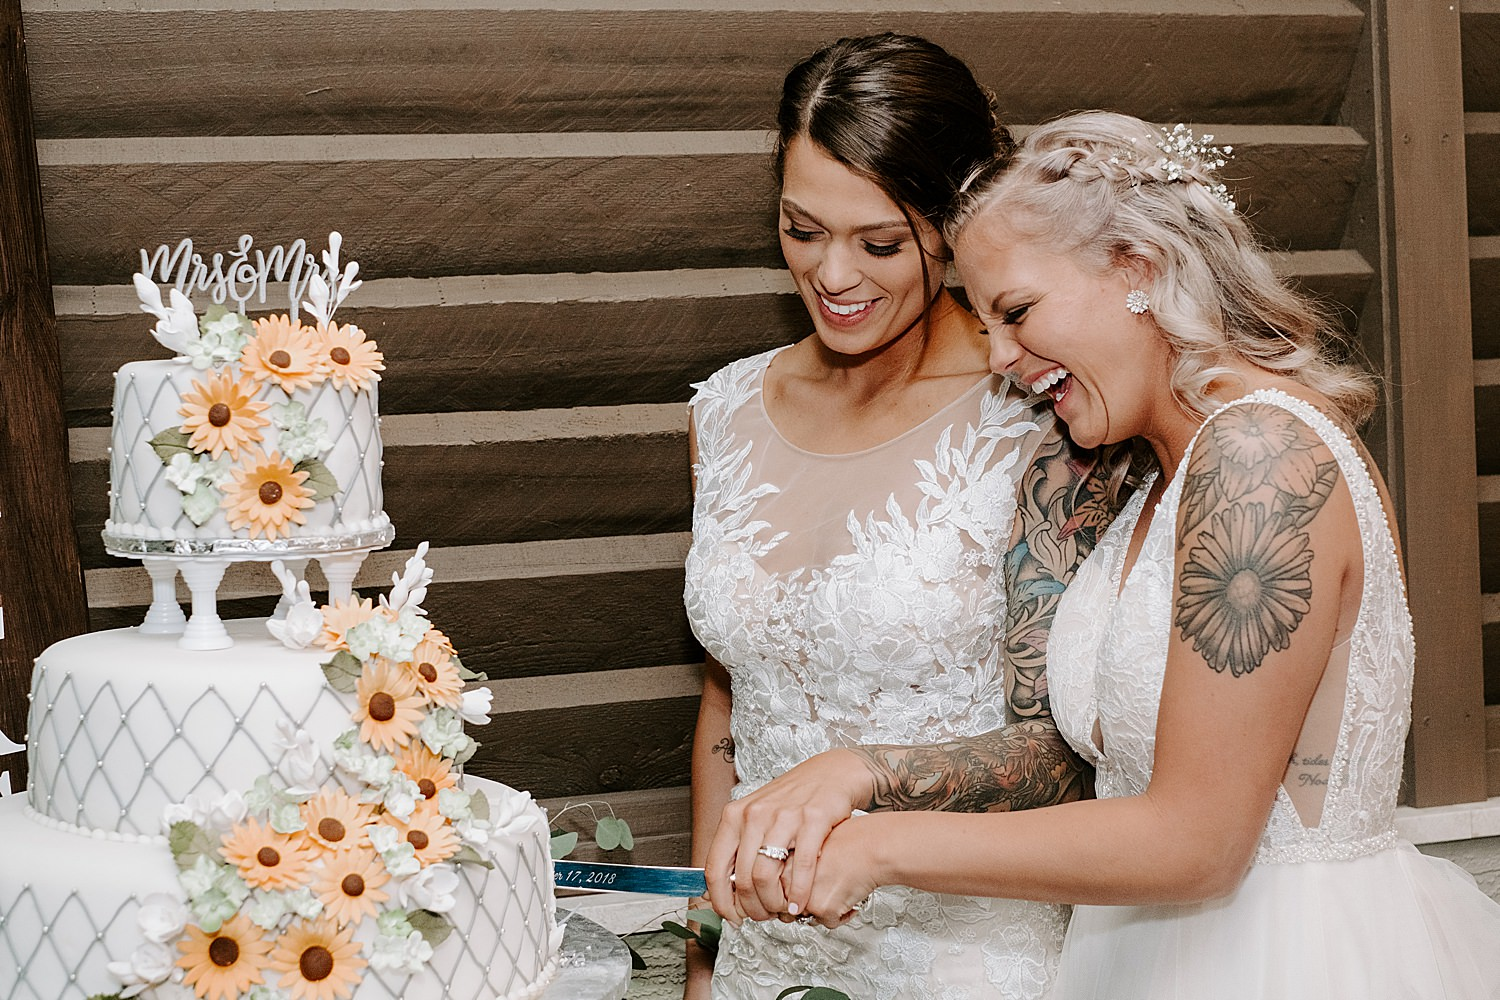 Two brides smile as they cut their wedding cake together